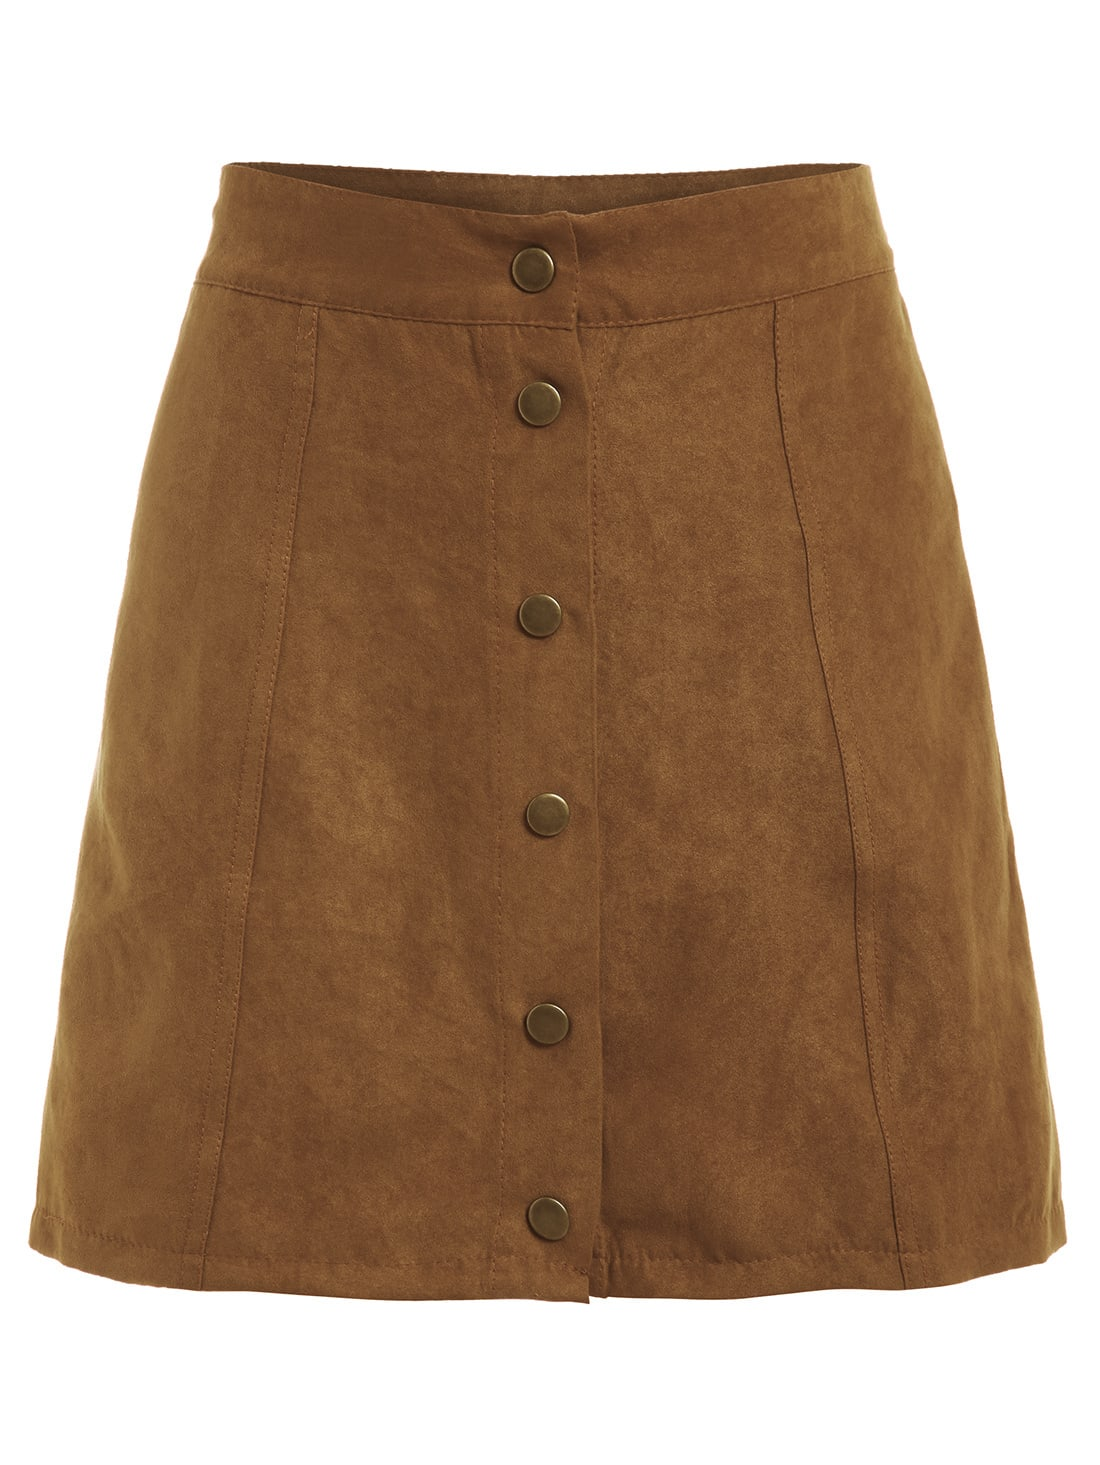 Available In Black High Rise Mini Skirt A-Line Cut Wet-Look Faux Leather Back Zipper 2 Pockets